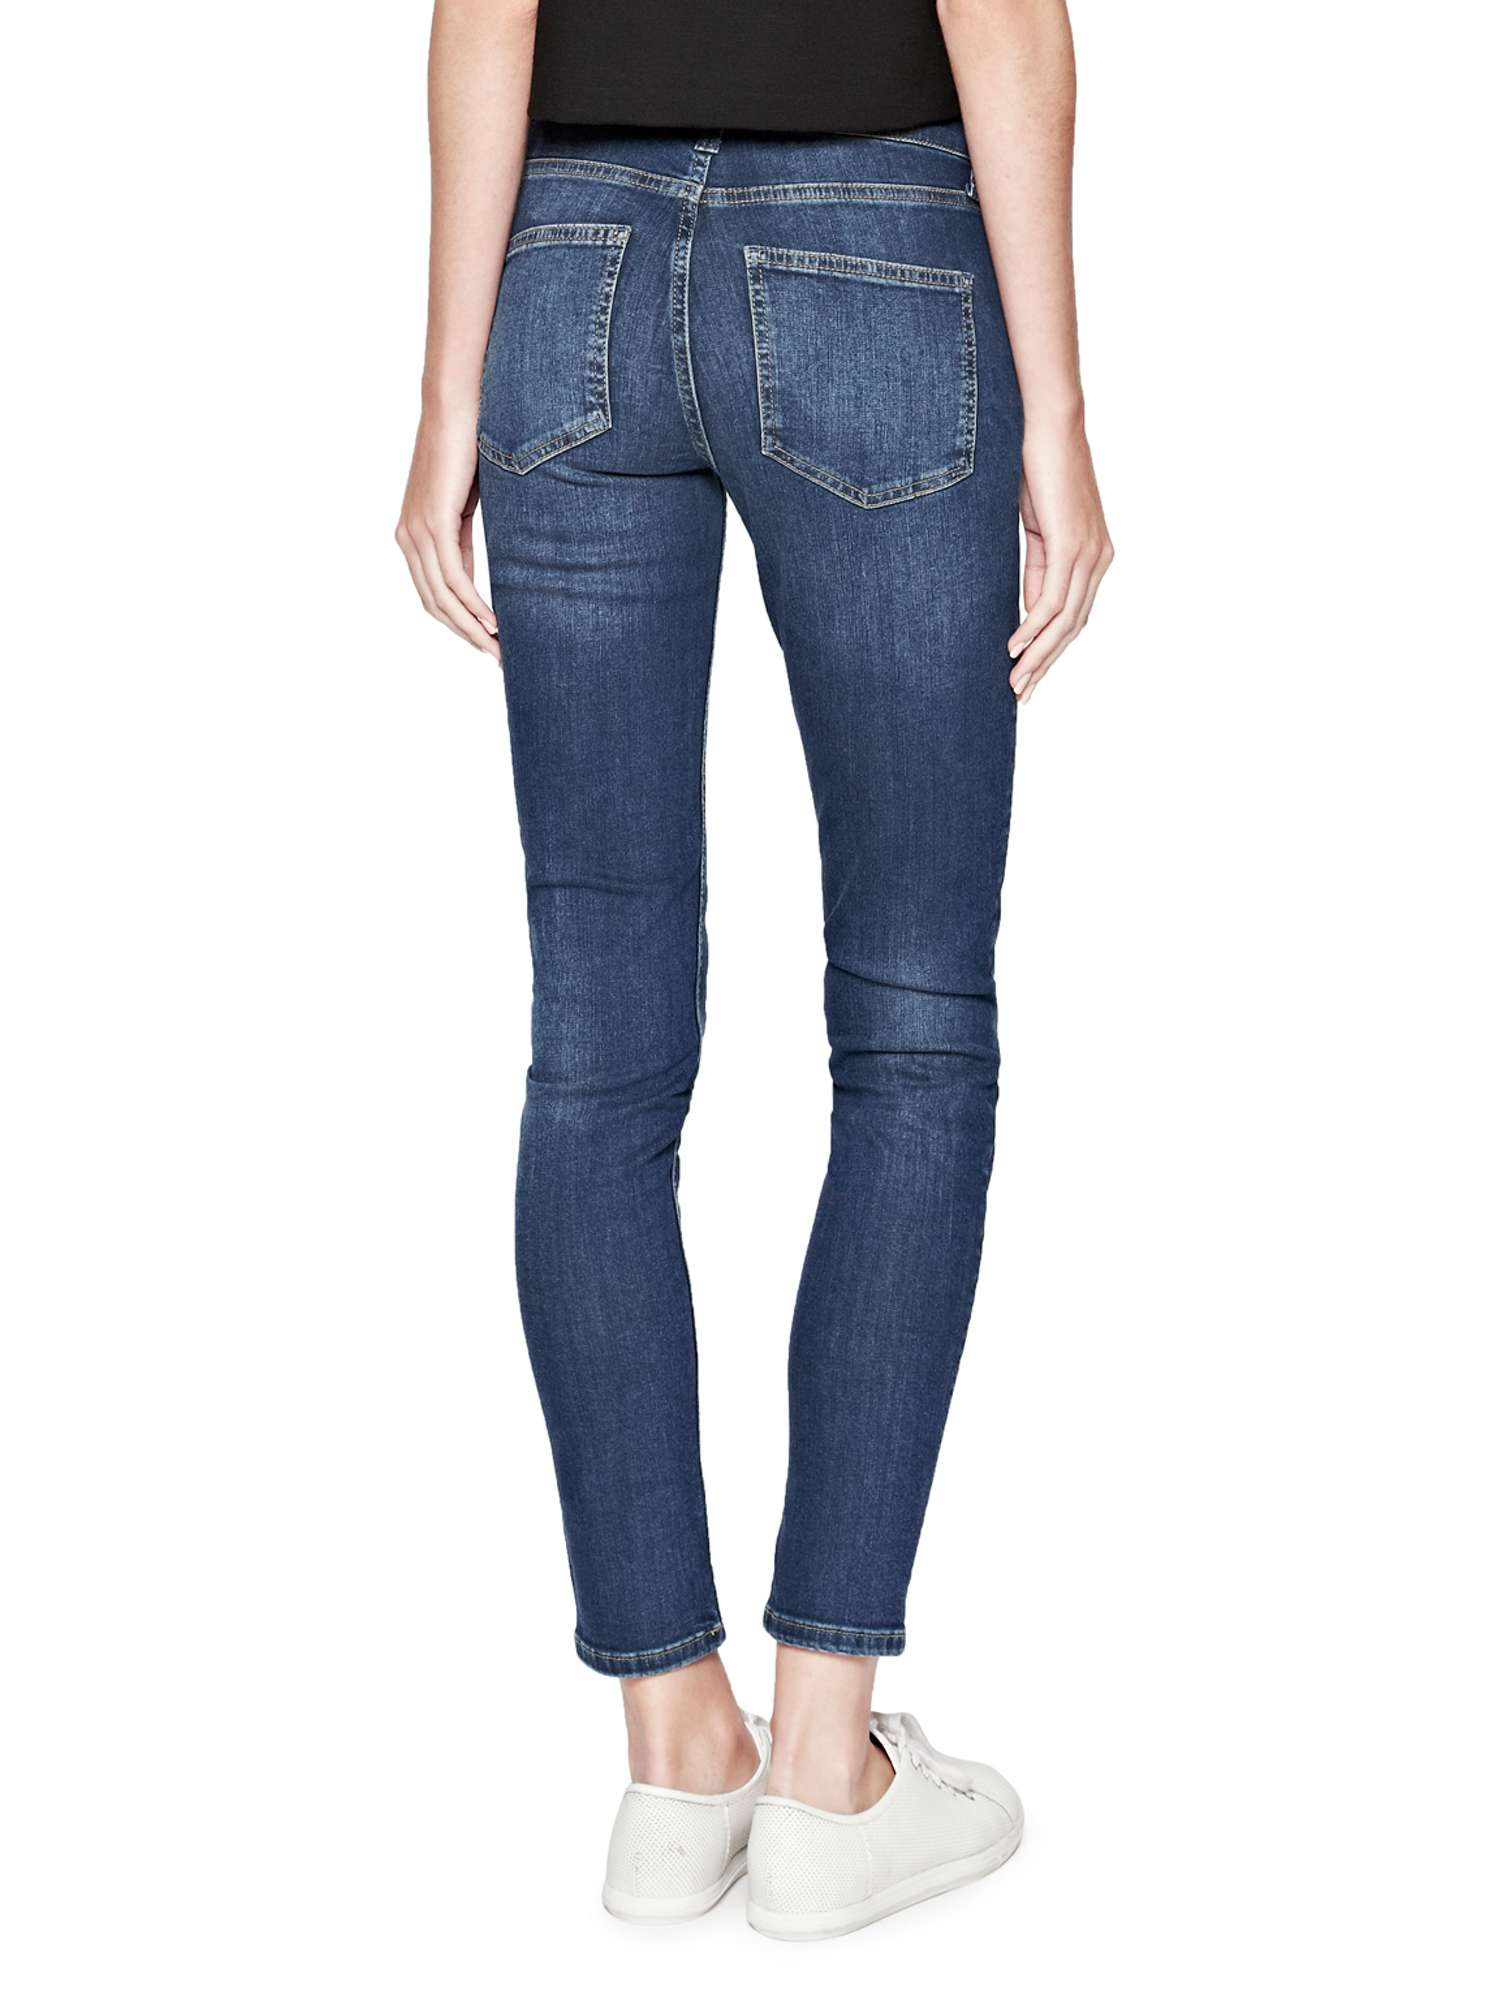 Rebound Connection Stretch Skinny Denim French qt1UwC